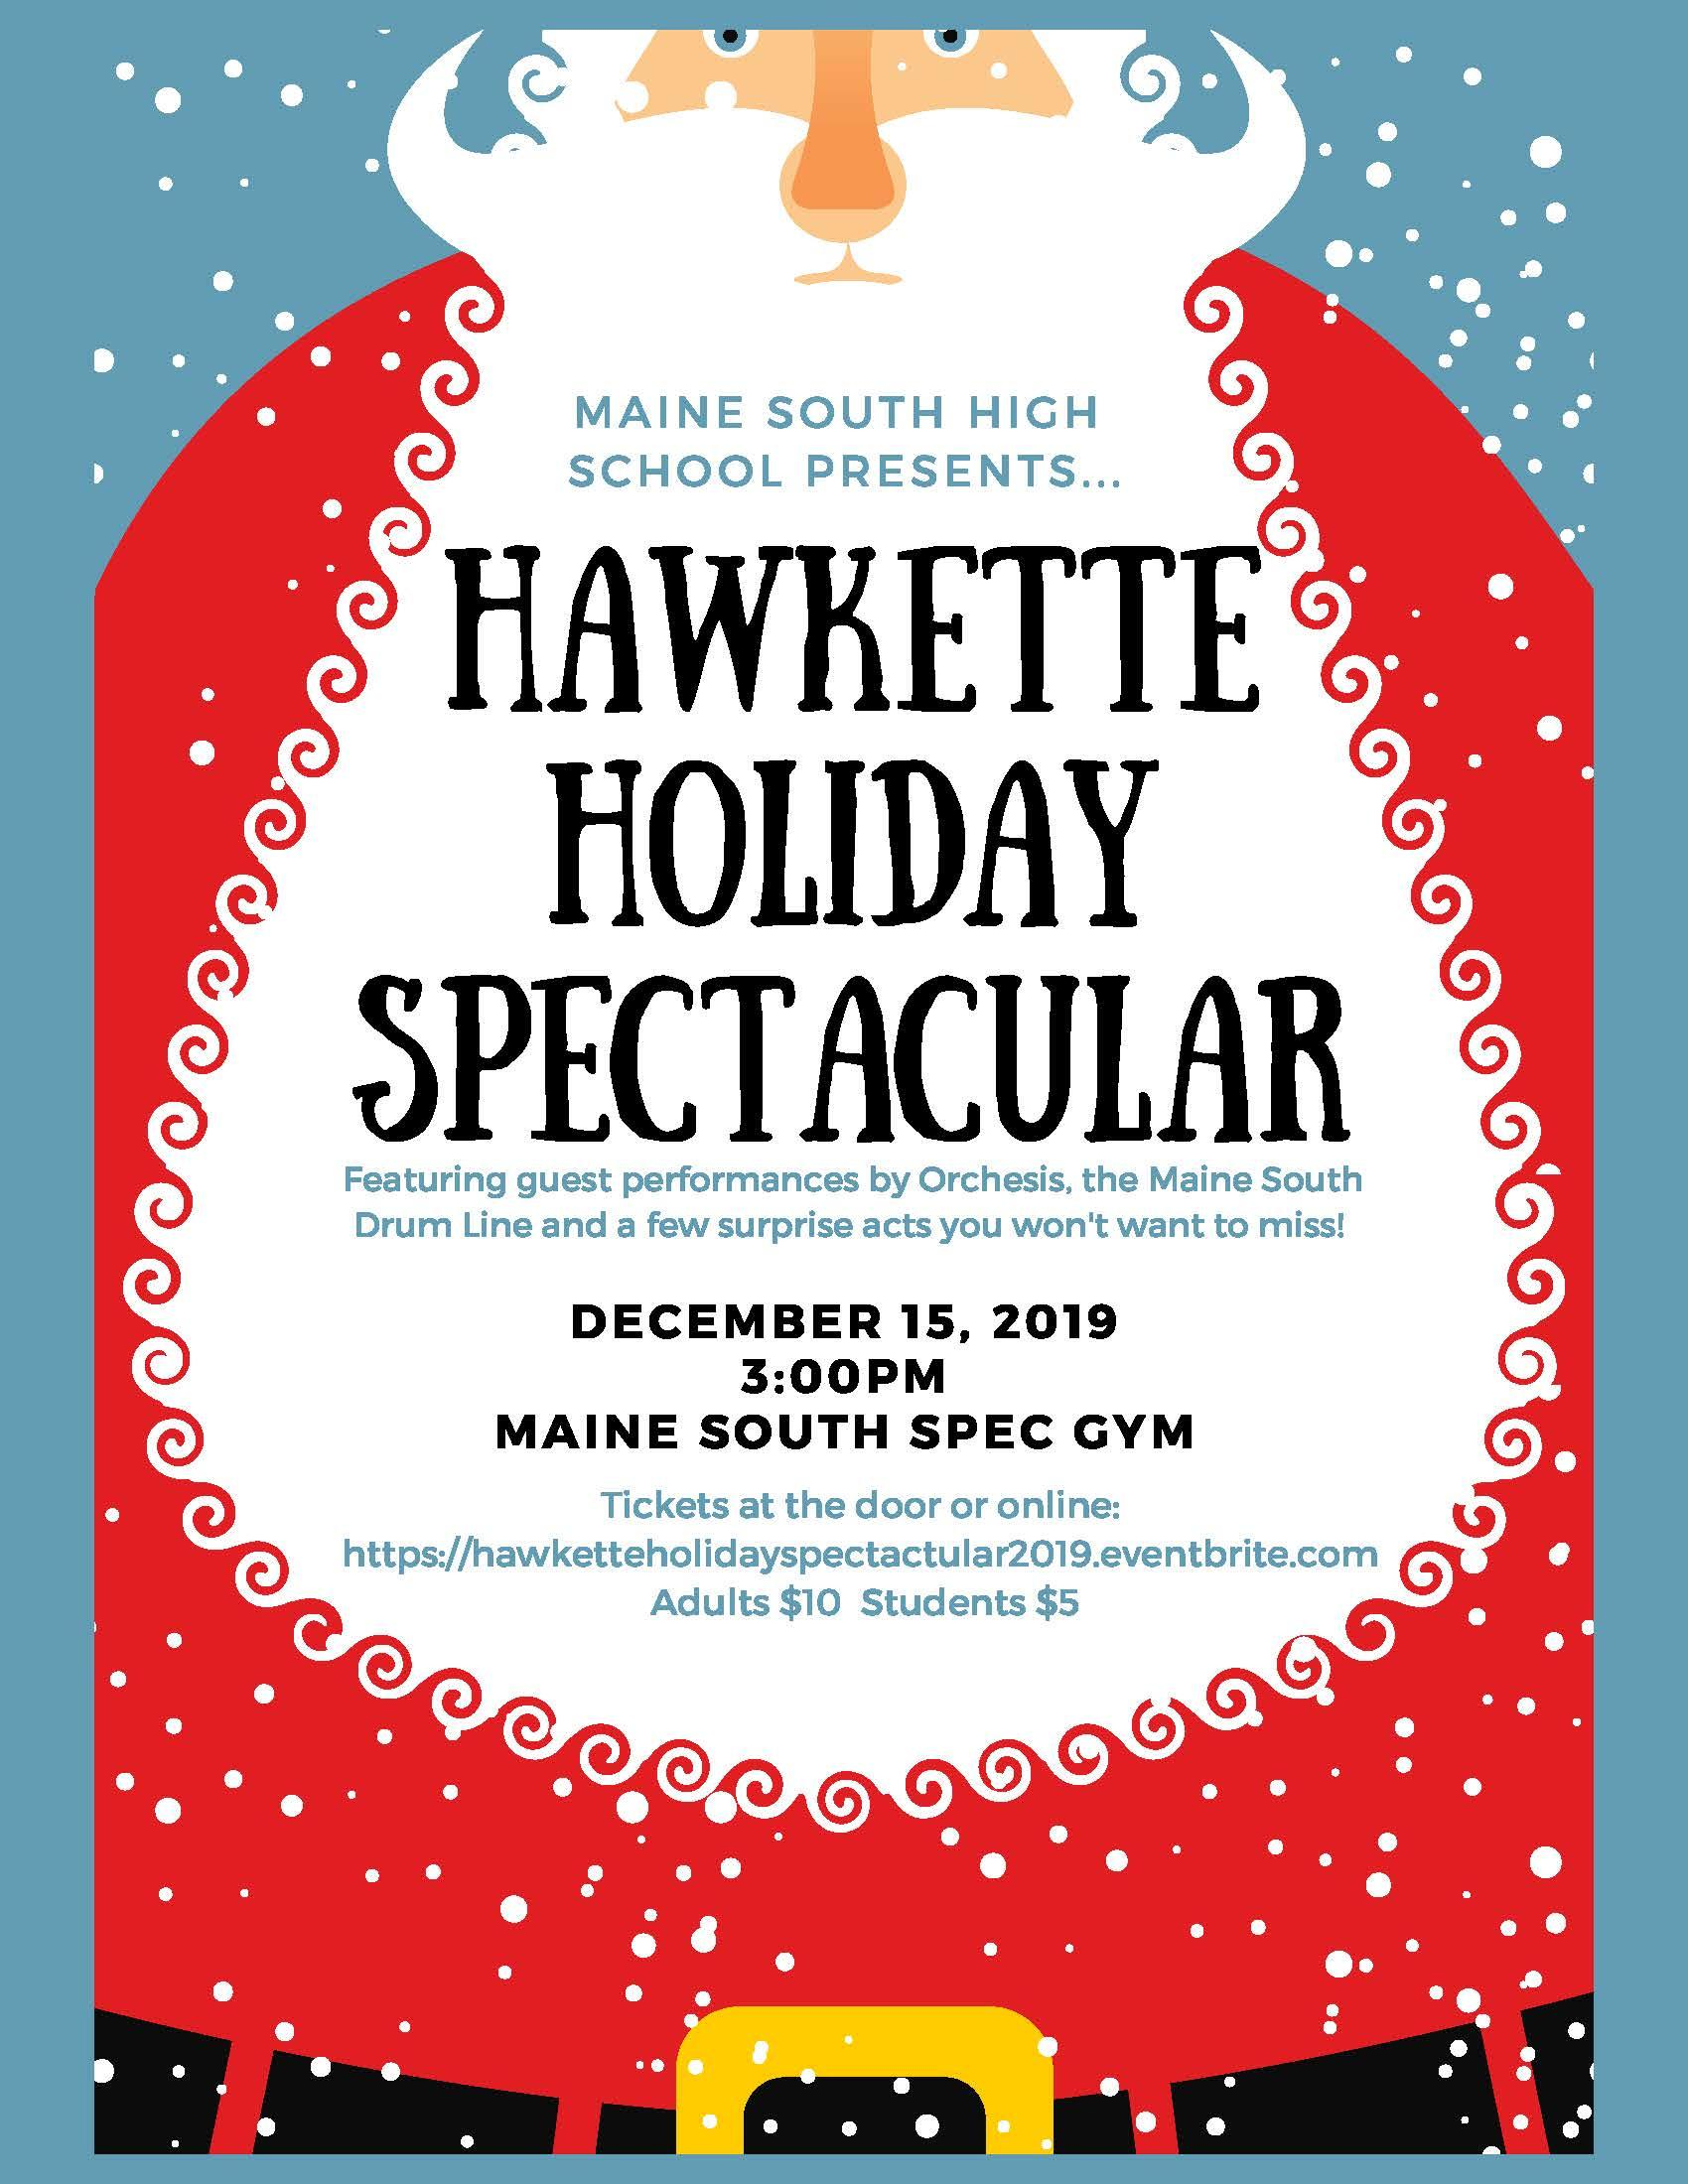 Hawkette Holiday Spectacular